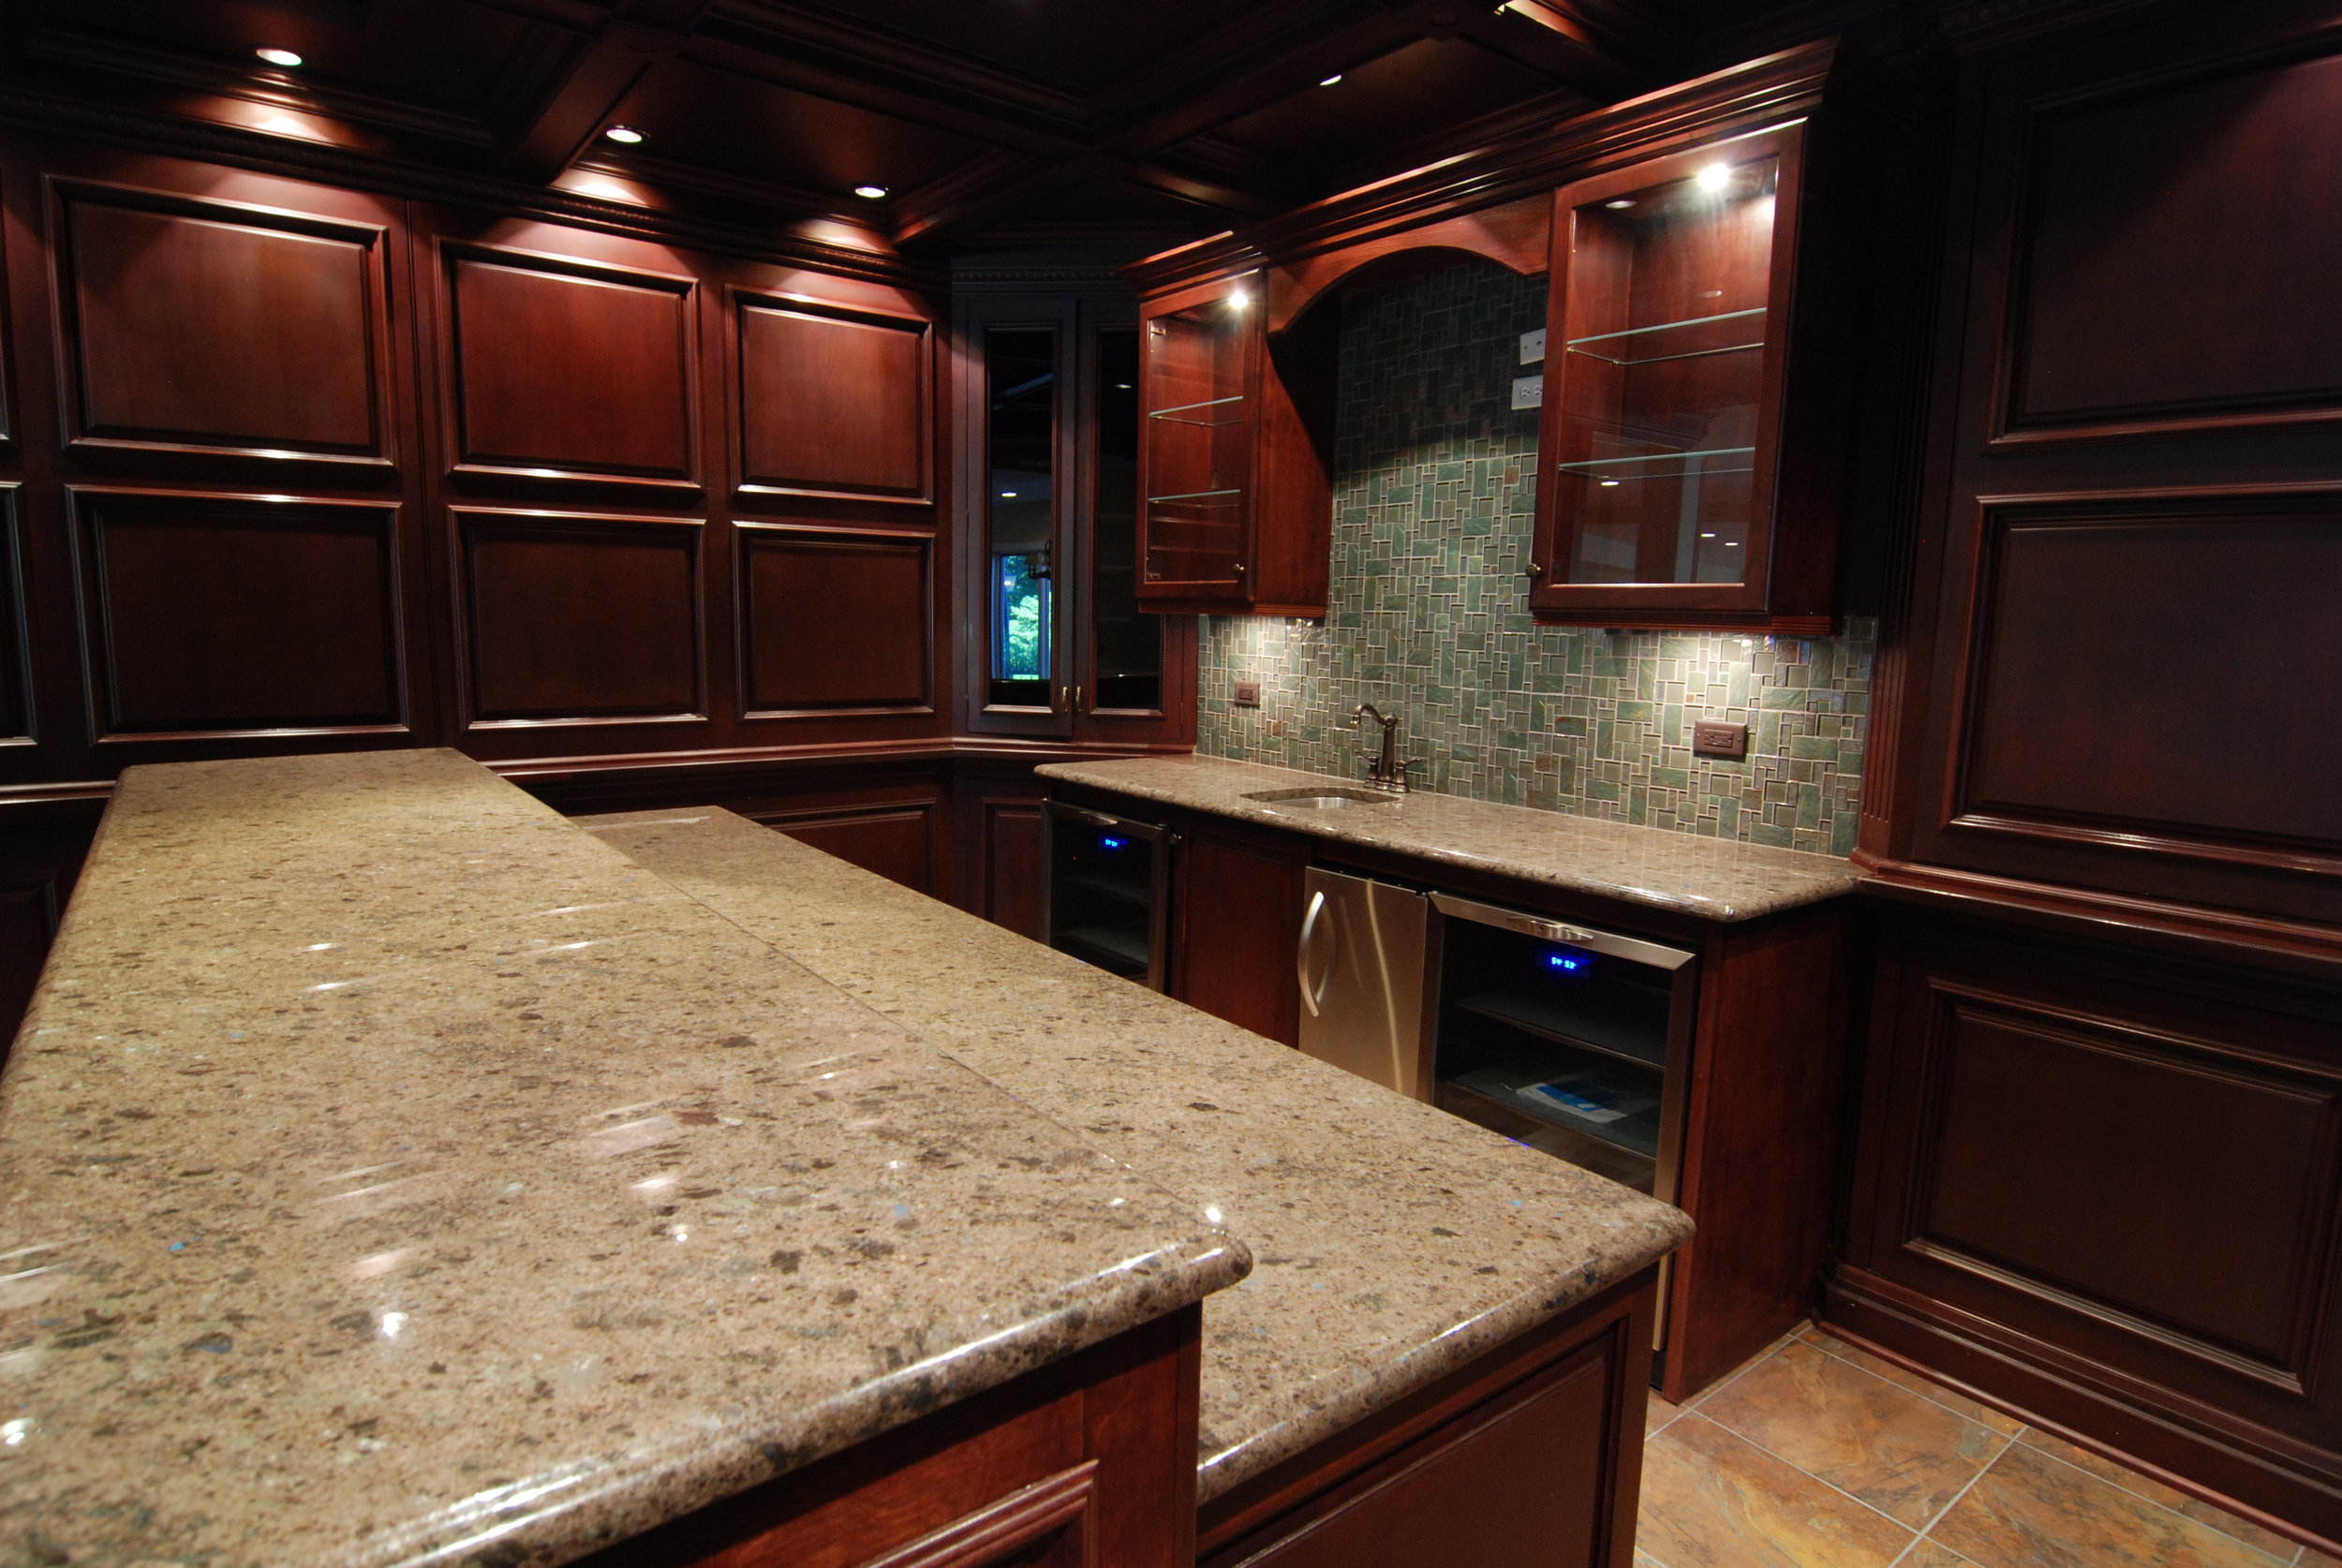 Naperville Basement Custom Bar & Kitchens. Finished Basement in Naperville IL. Basement Remodeling